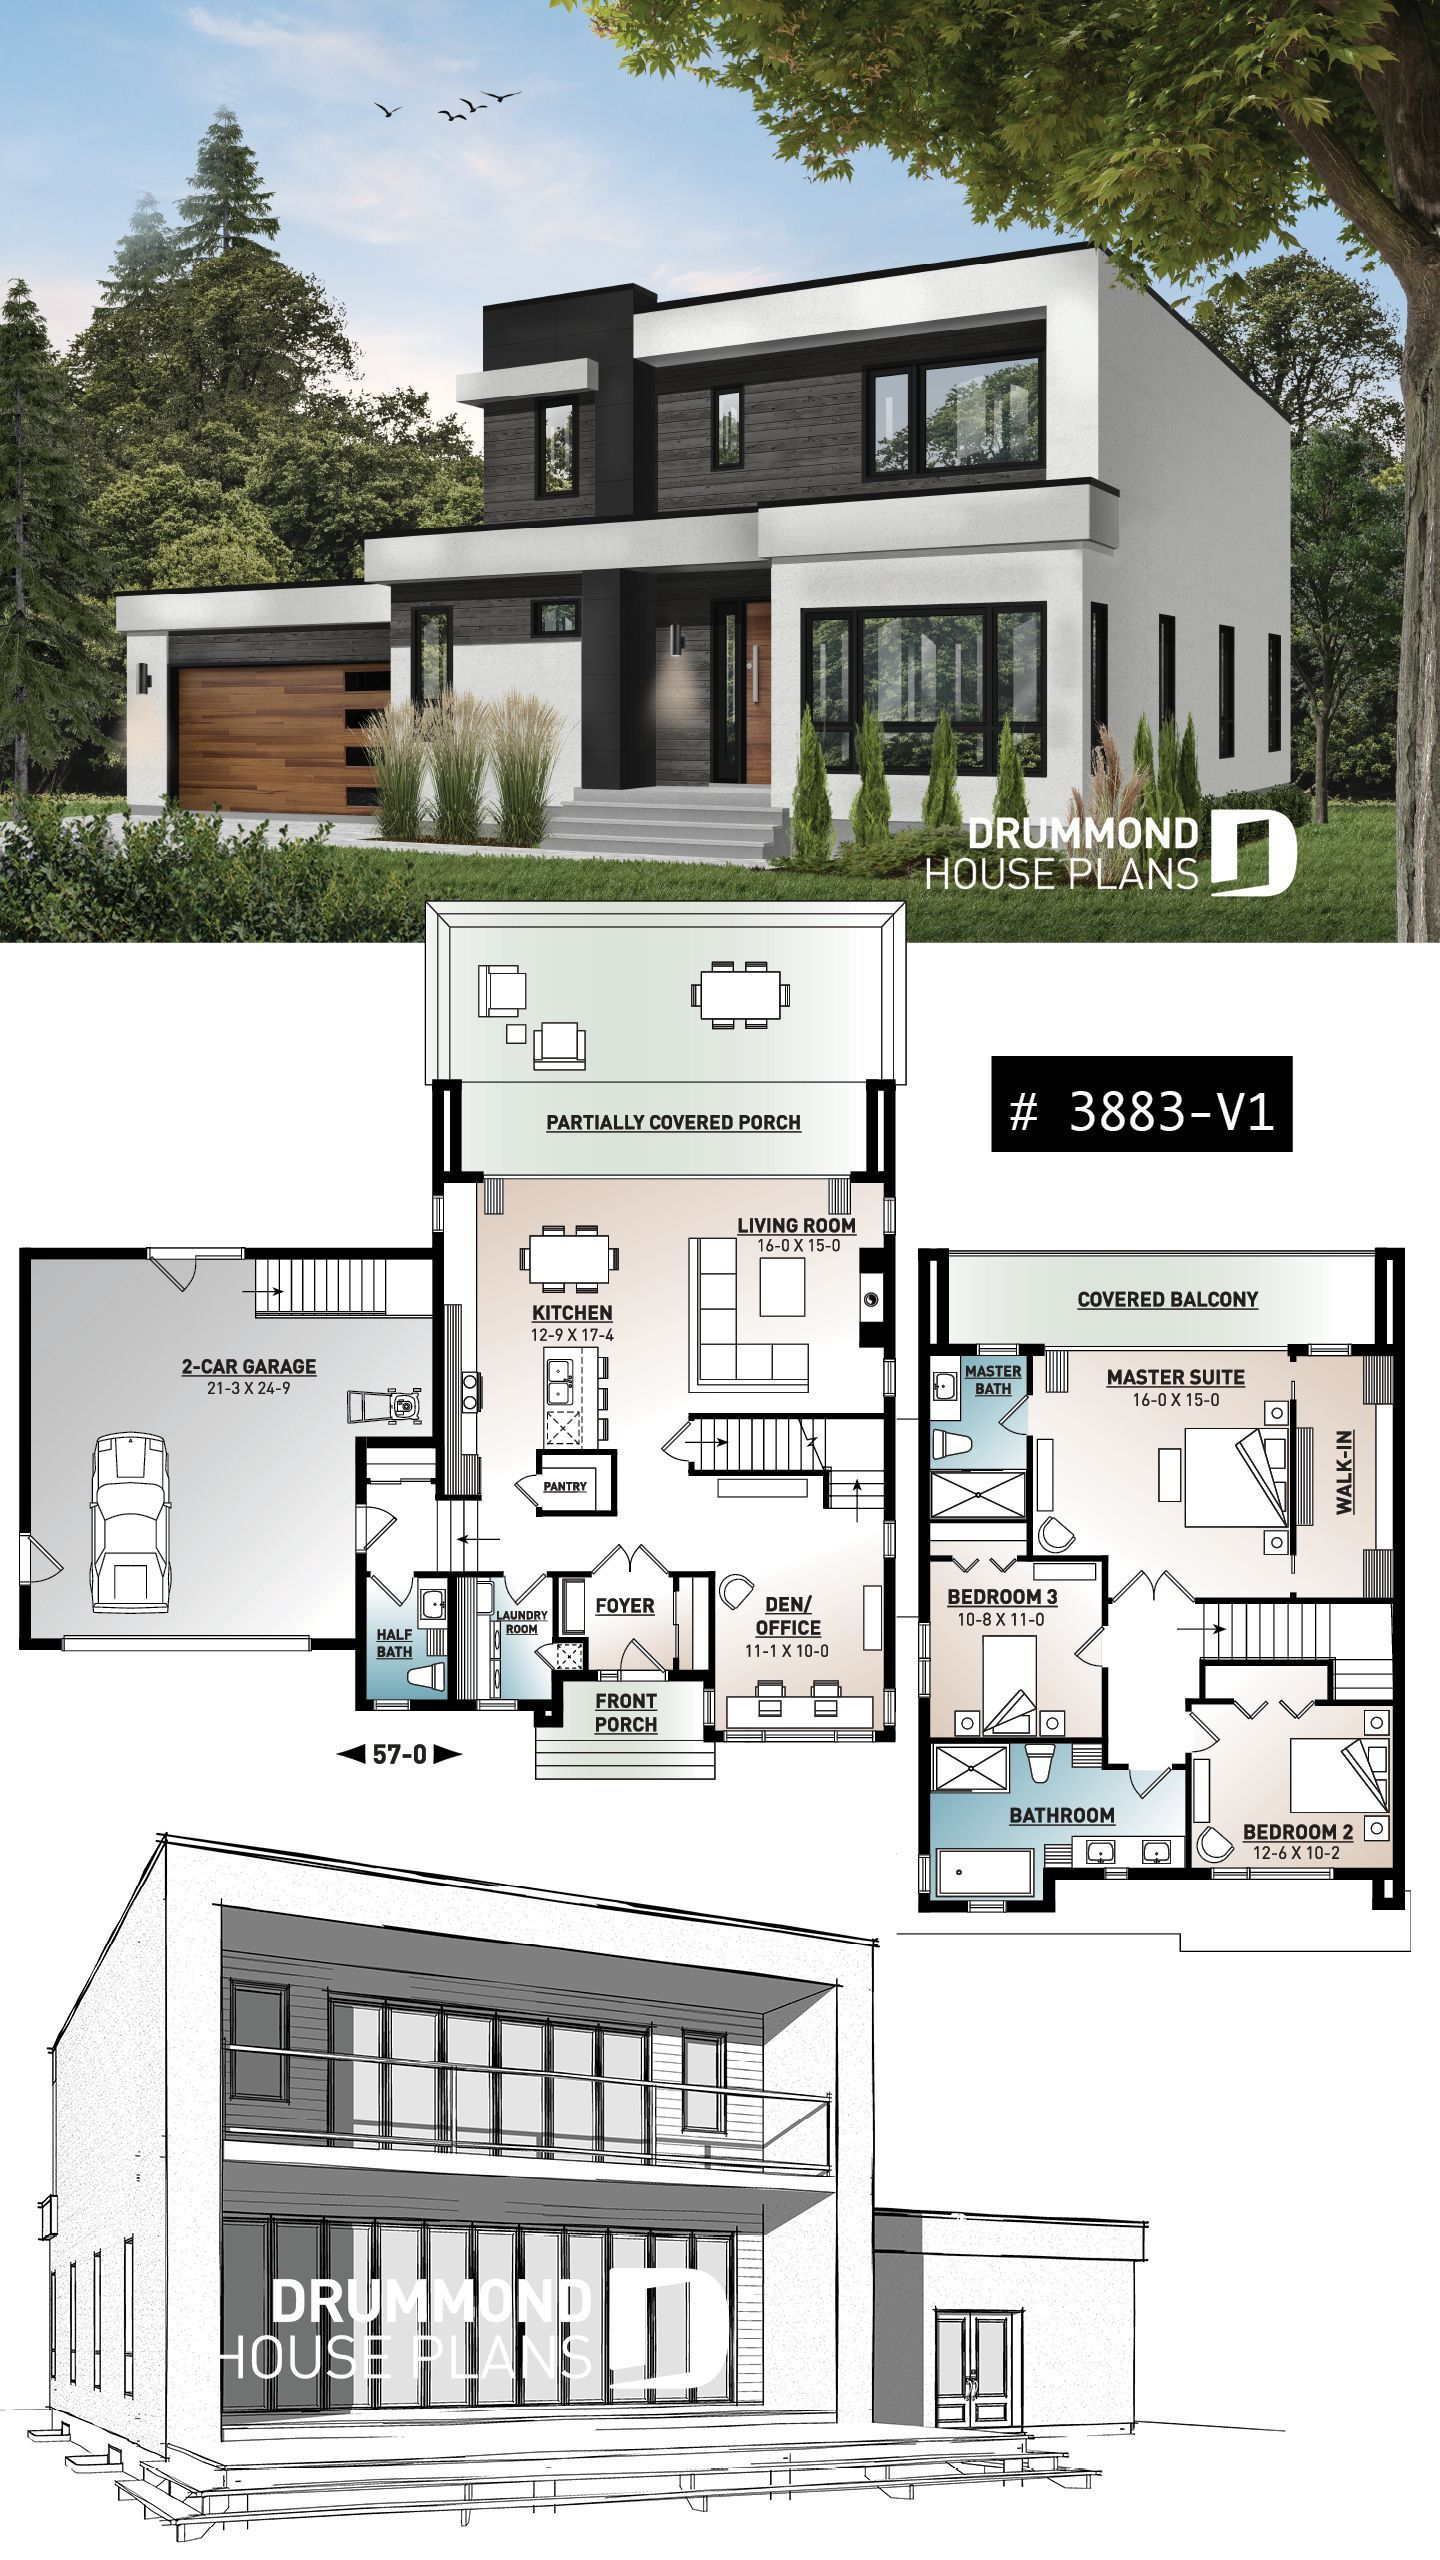 House Plan Designs With Photos 2020 Modern House Floor Plans Contemporary House Plans Modern House Plans